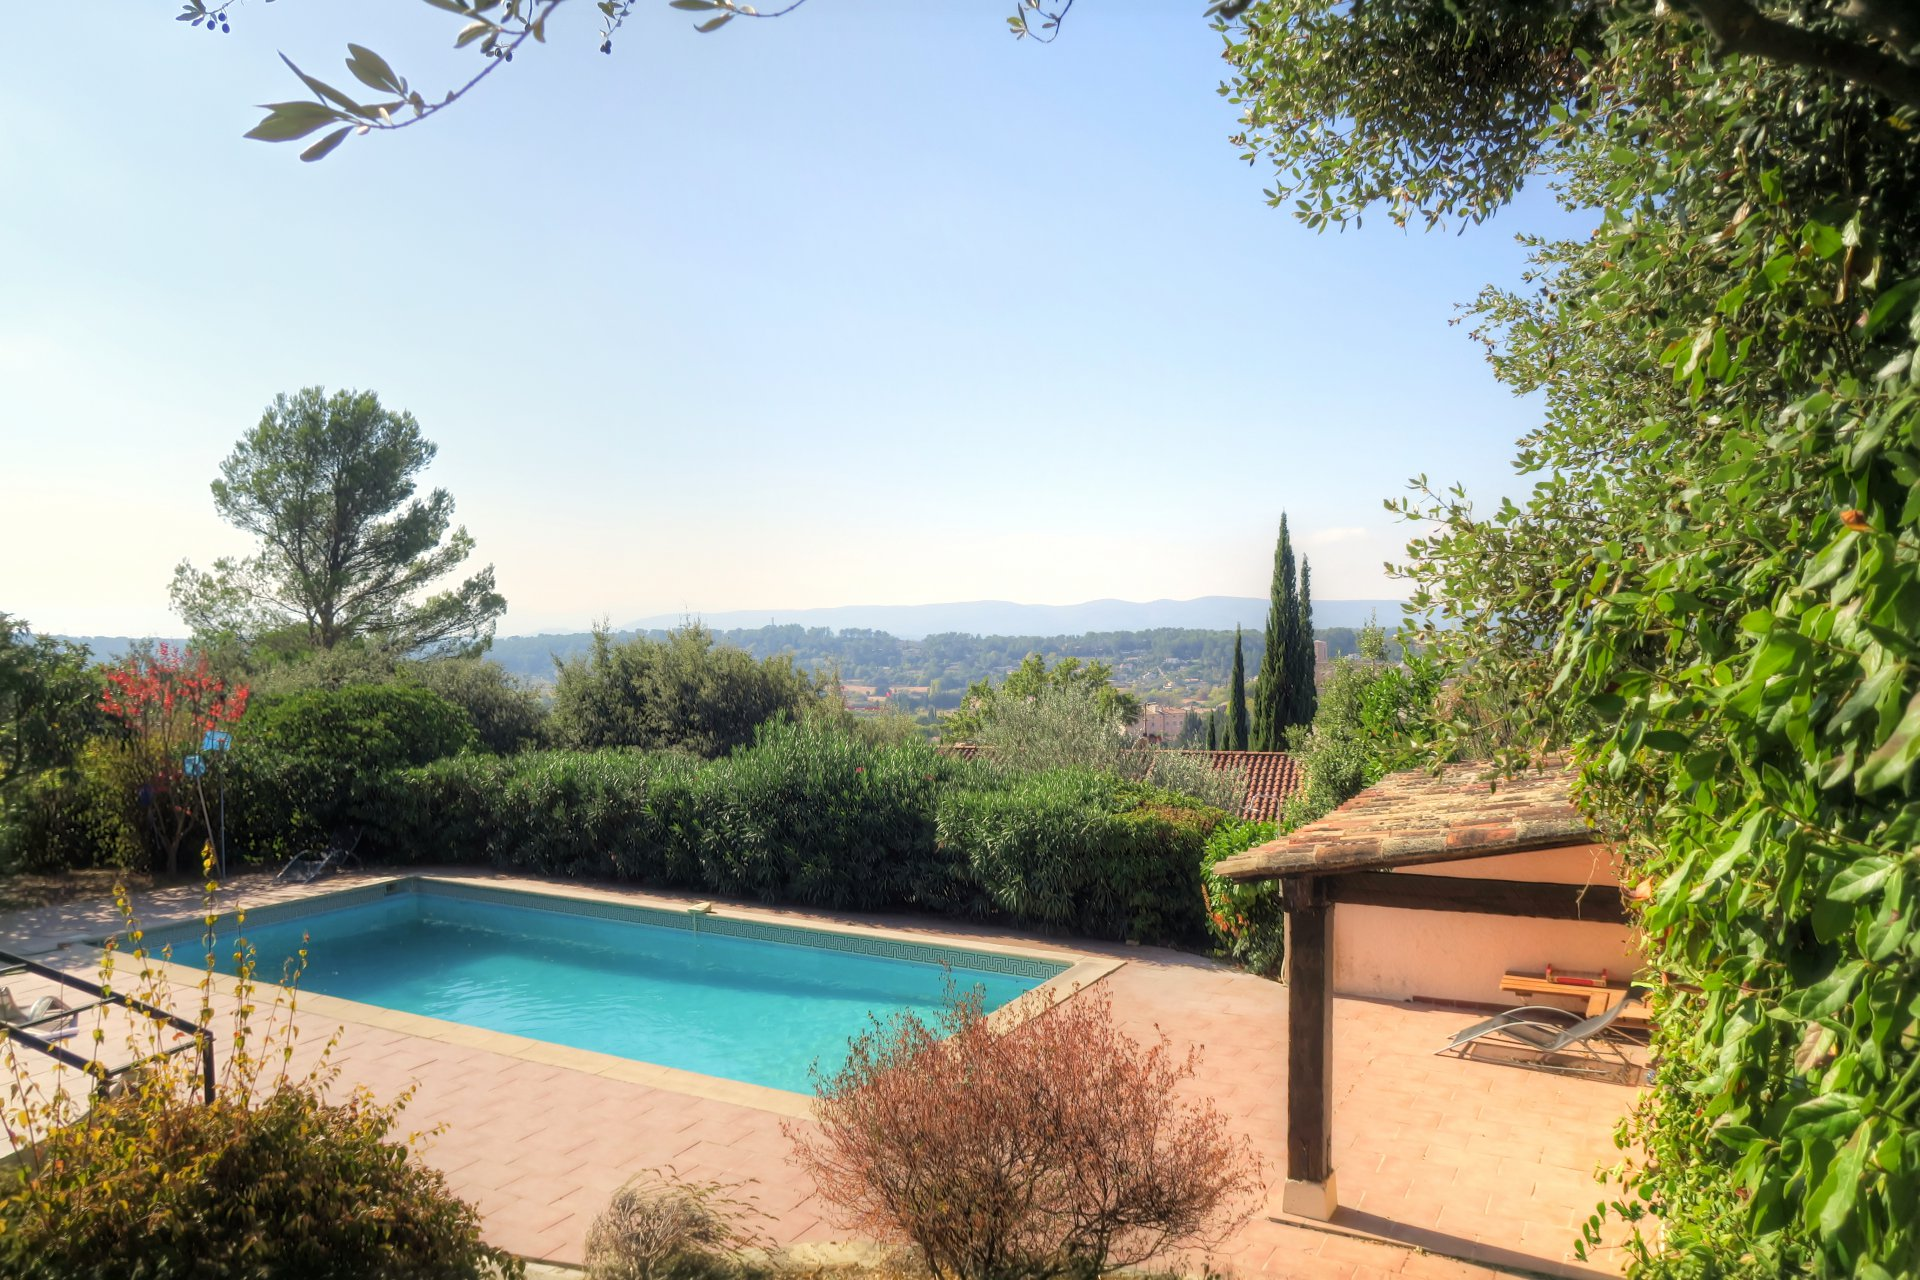 House with a seperate appartement and 2 studios,pool, nice view, no noise